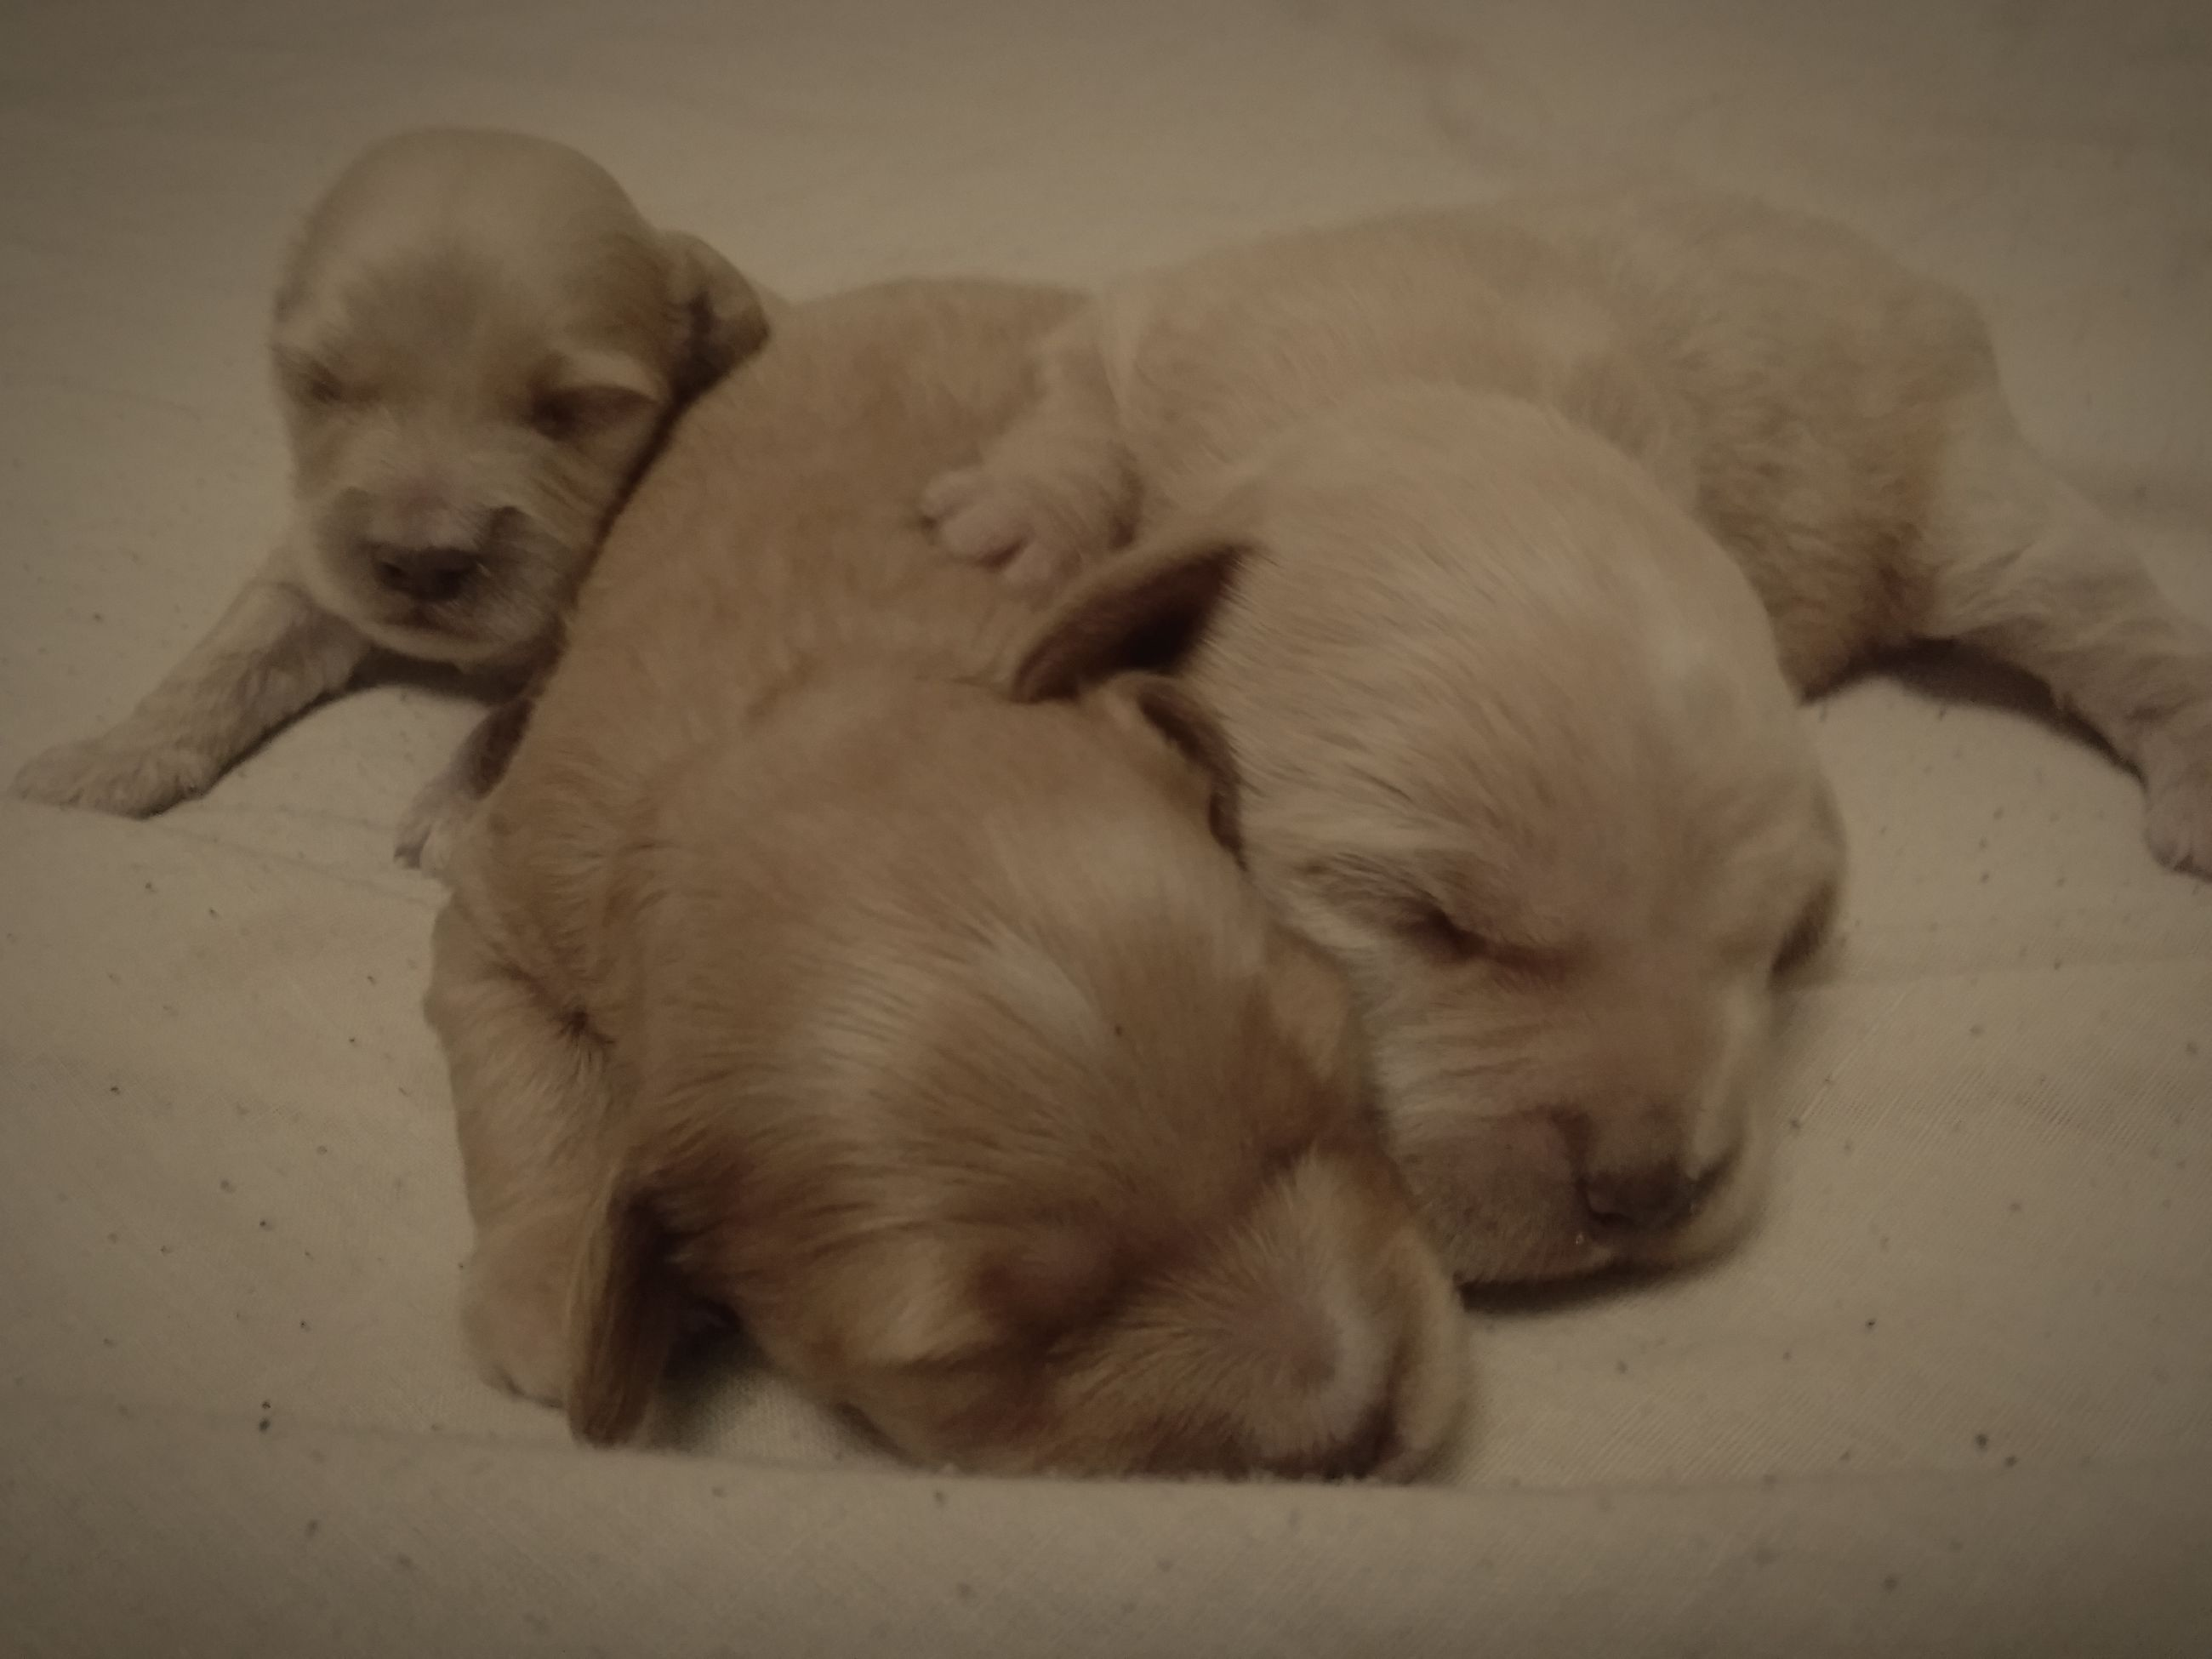 dog, pets, sleeping, domestic animals, puppy, togetherness, animal themes, indoors, eyes closed, cute, mammal, lying down, relaxation, young animal, no people, close-up, day